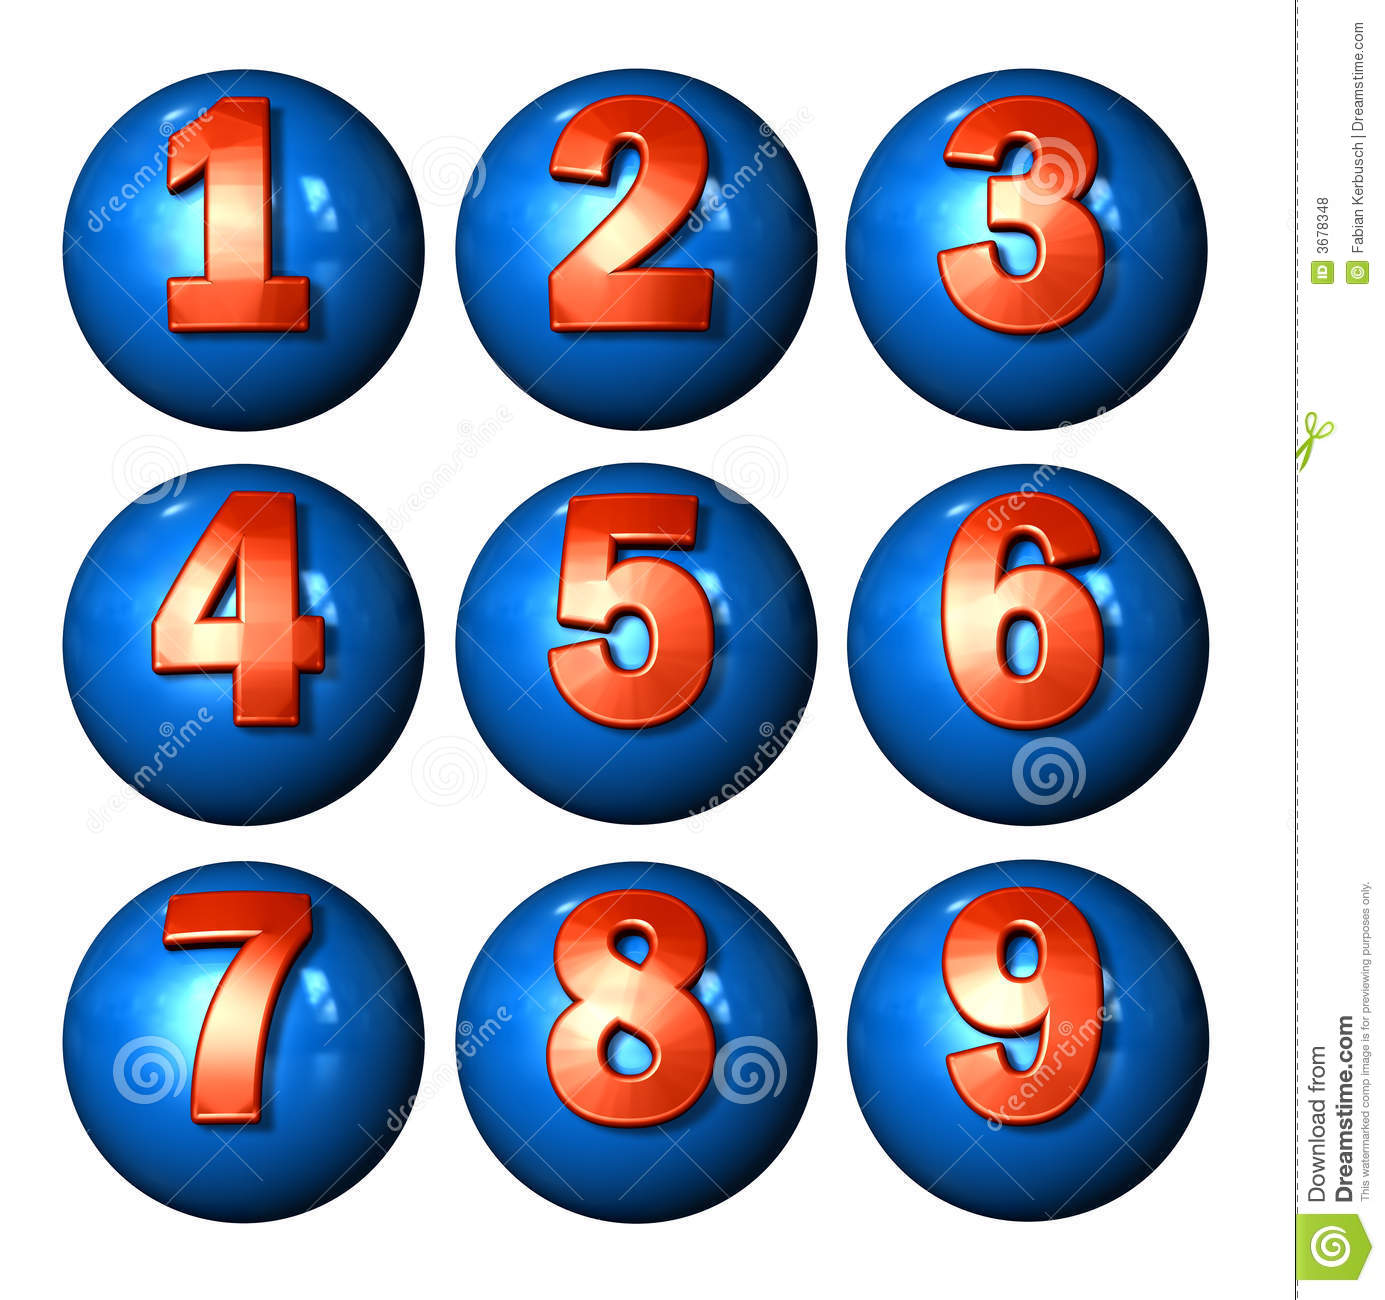 icon ball numbers royalty free stock photos image 3678348 crystal ball clipart black and white crystal ball clipart images